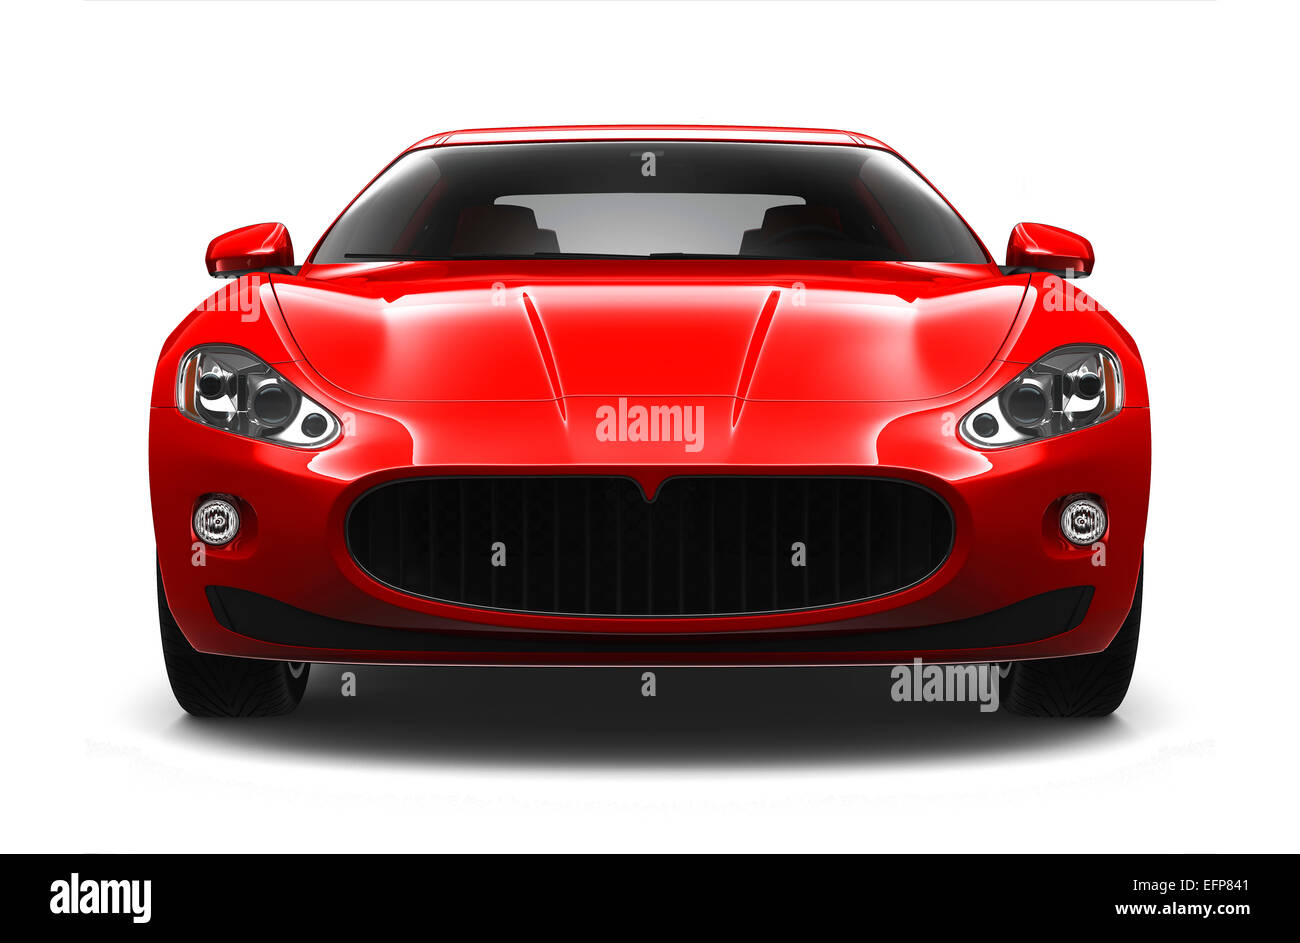 Red sport coupe car - Stock Image